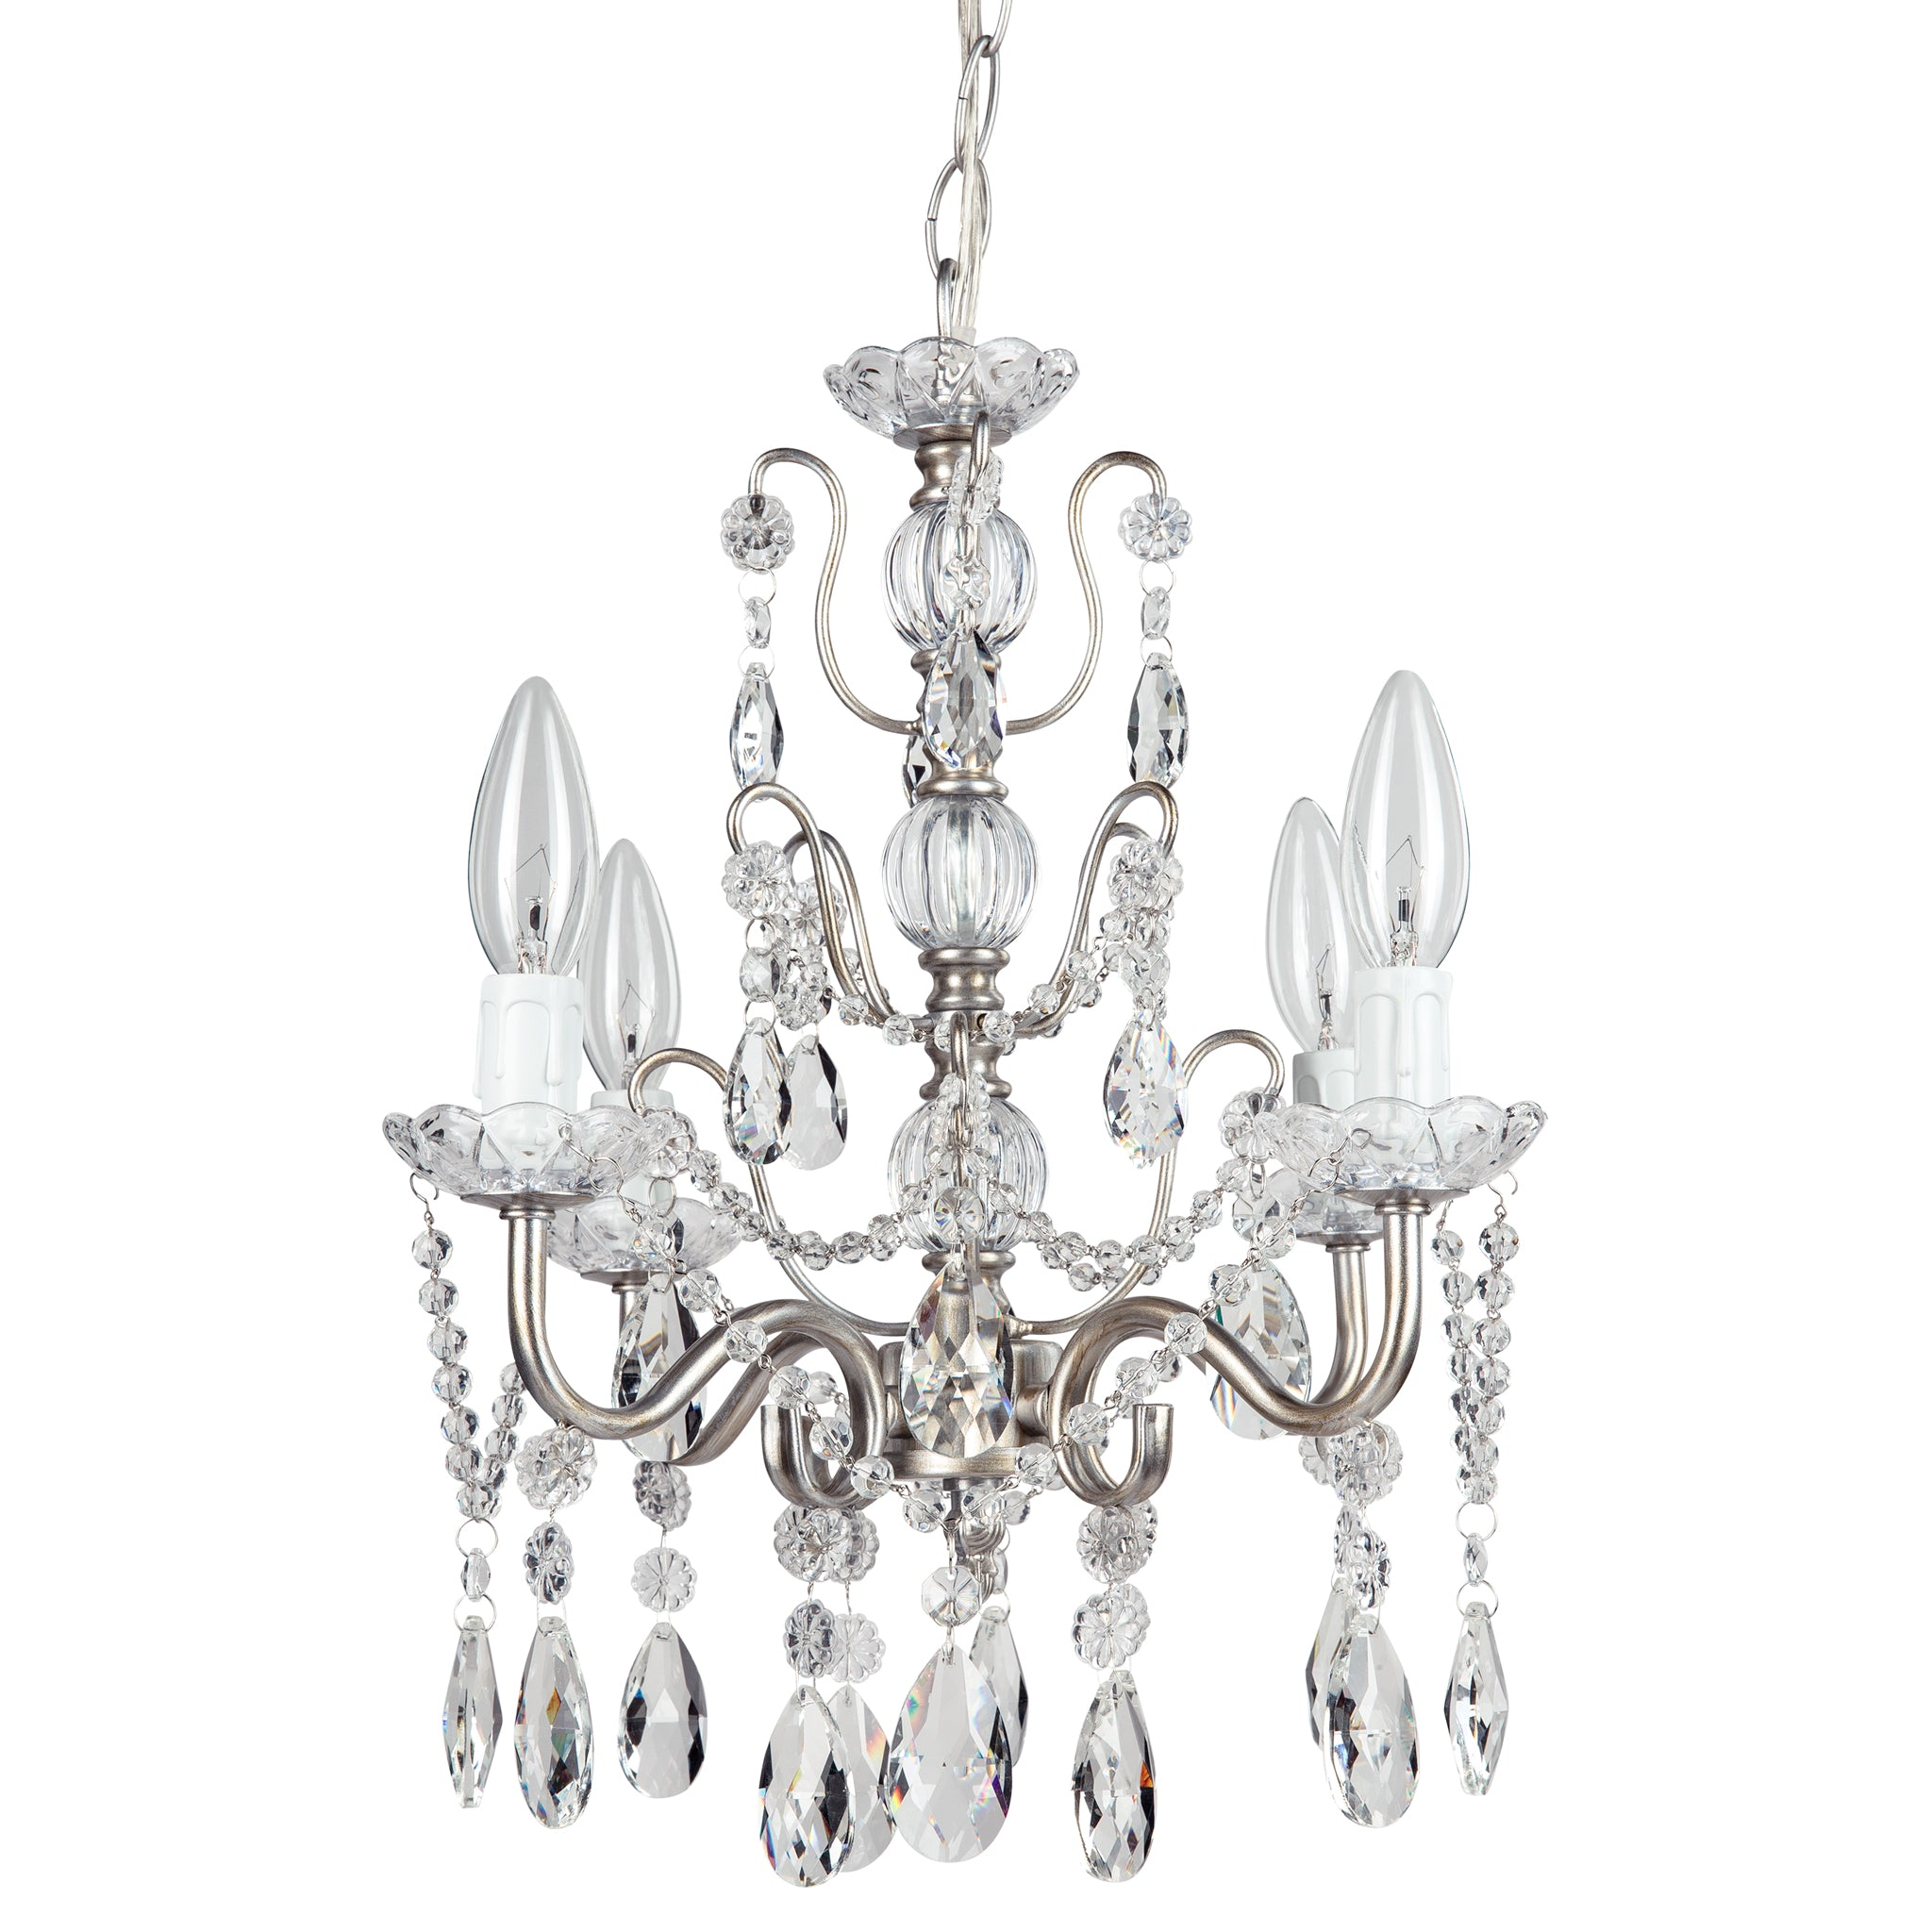 Amalfi Decor 4 Light Shabby Chic Crystal Plug-In Chandelier (Silver) | H | Wrought Iron Frame with Glass Crystals